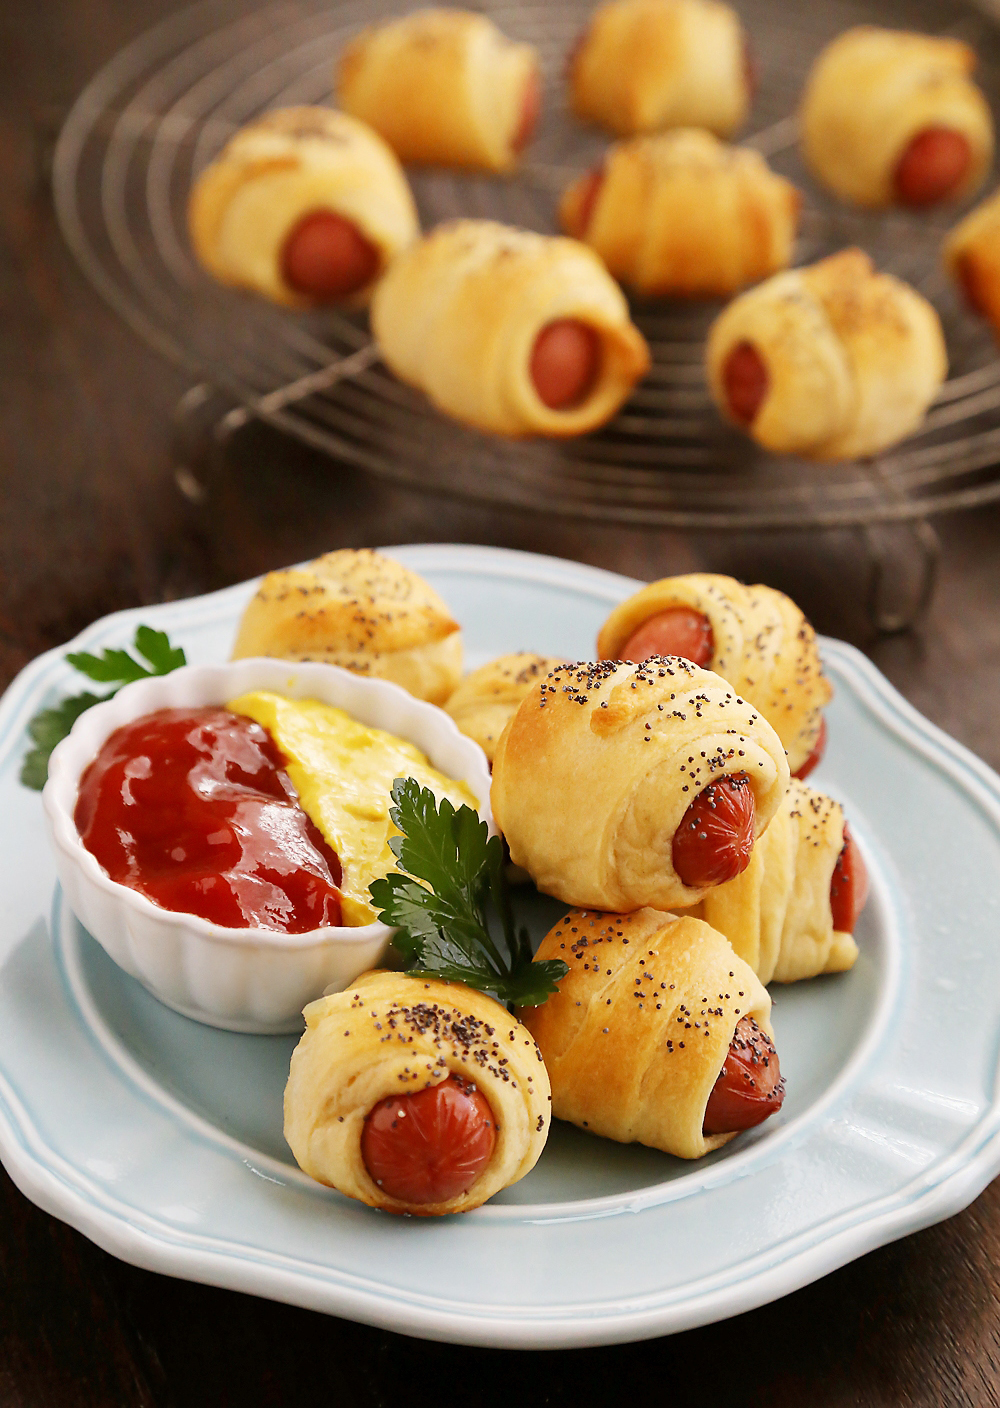 Hot Dogs Wrapped In Crescent Rolls